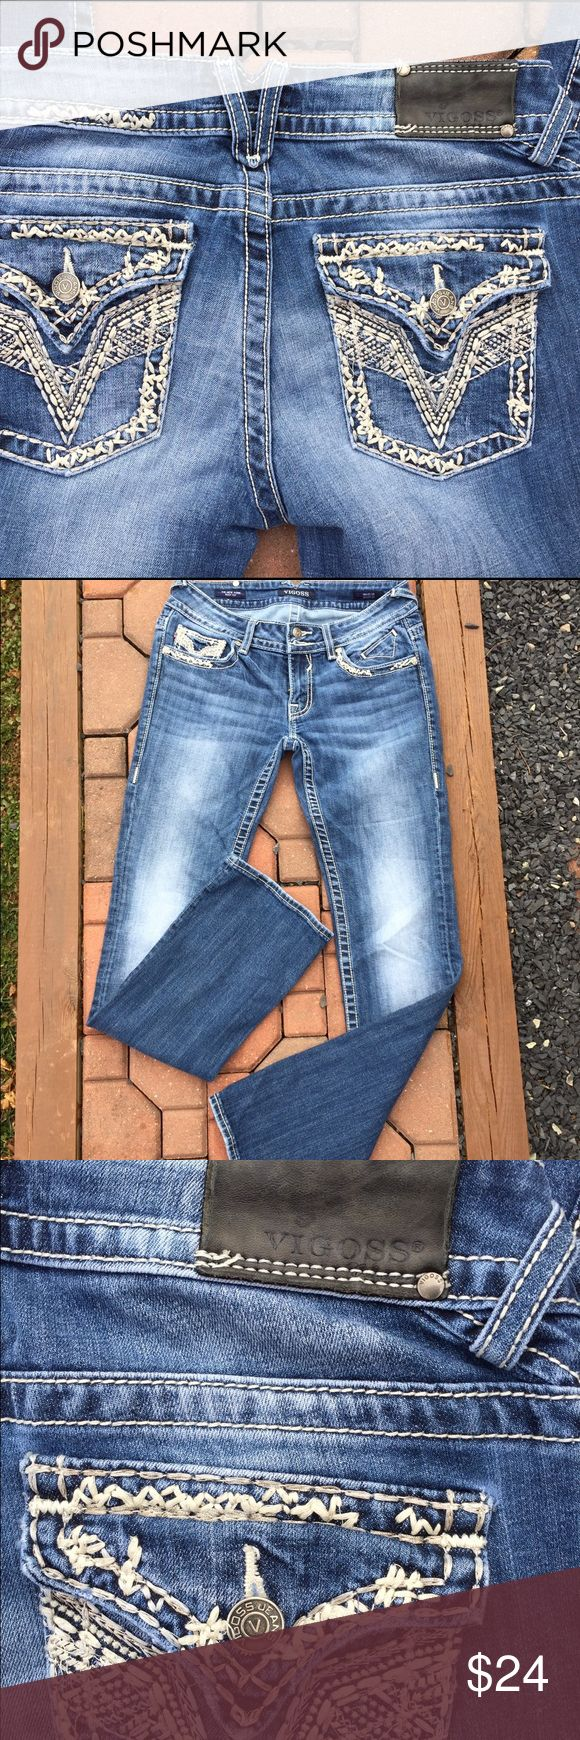 """Vigoss The New York Bootcut Jeans Size 27 X 33 Size 27X33. Bootcut. Front Rise: 7"""". 98% cotton. 2% spandex. Be sure to view the other items in our closet. We offer both women's and Mens items in a variety of sizes. Bundle and save!! Thank you for viewing our item!! Vigoss Jeans Boot Cut"""